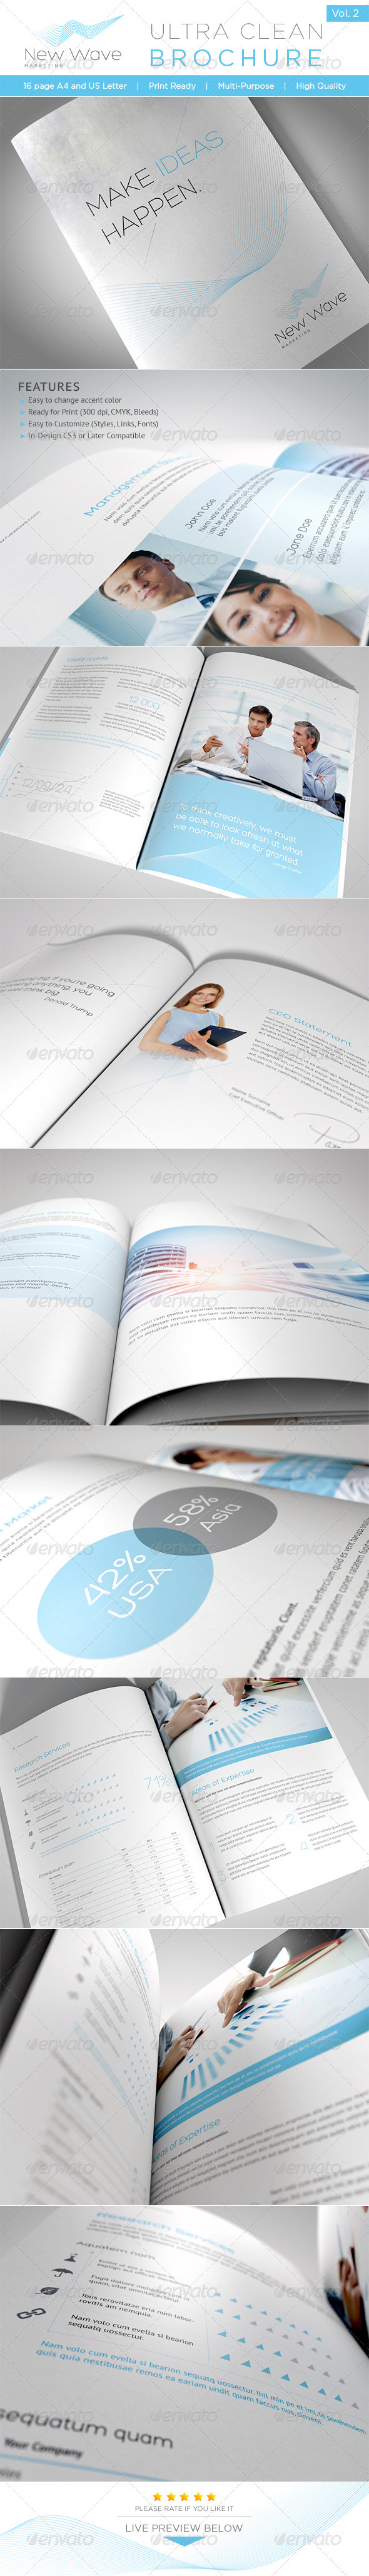 GraphicRiver Ultra Clean Brochure Vol 2 2802178